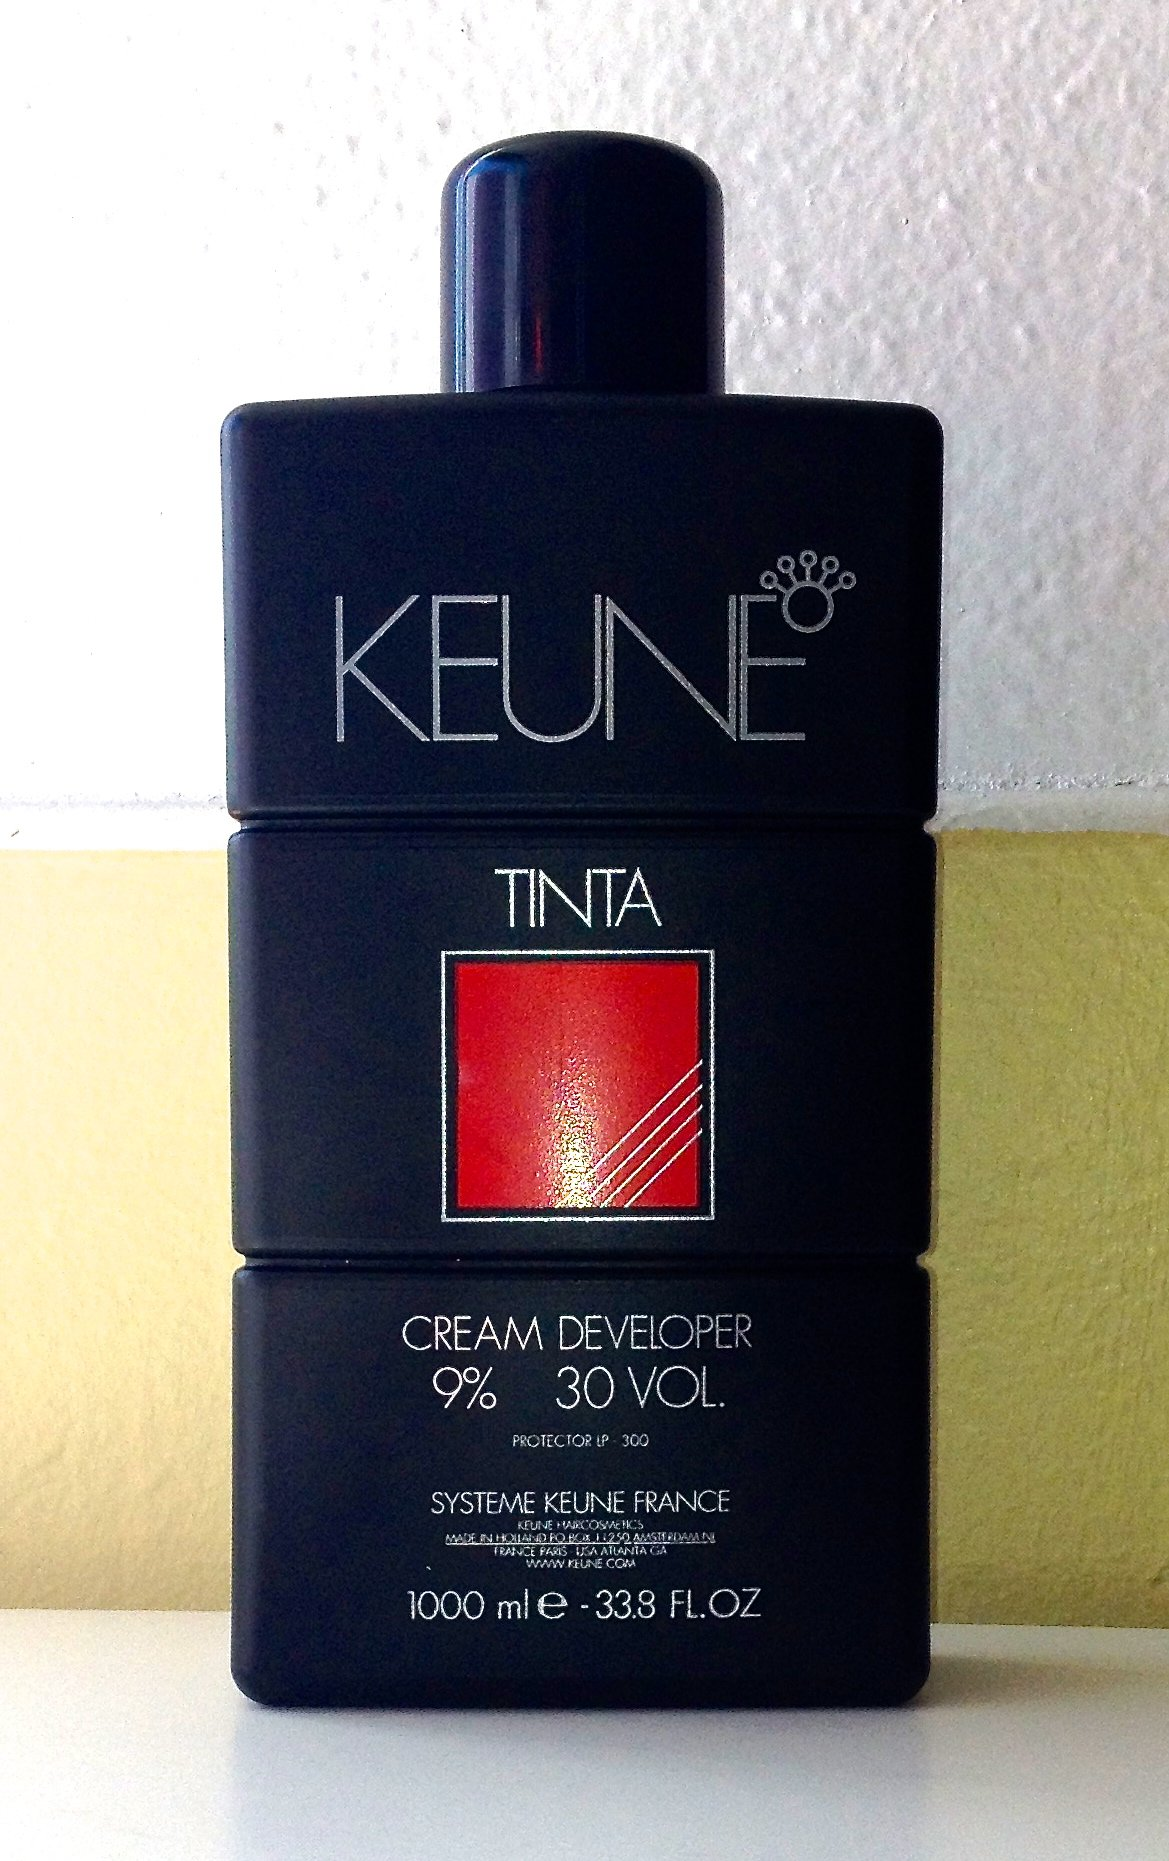 Keune Tinta Creme Developer 33.8oz